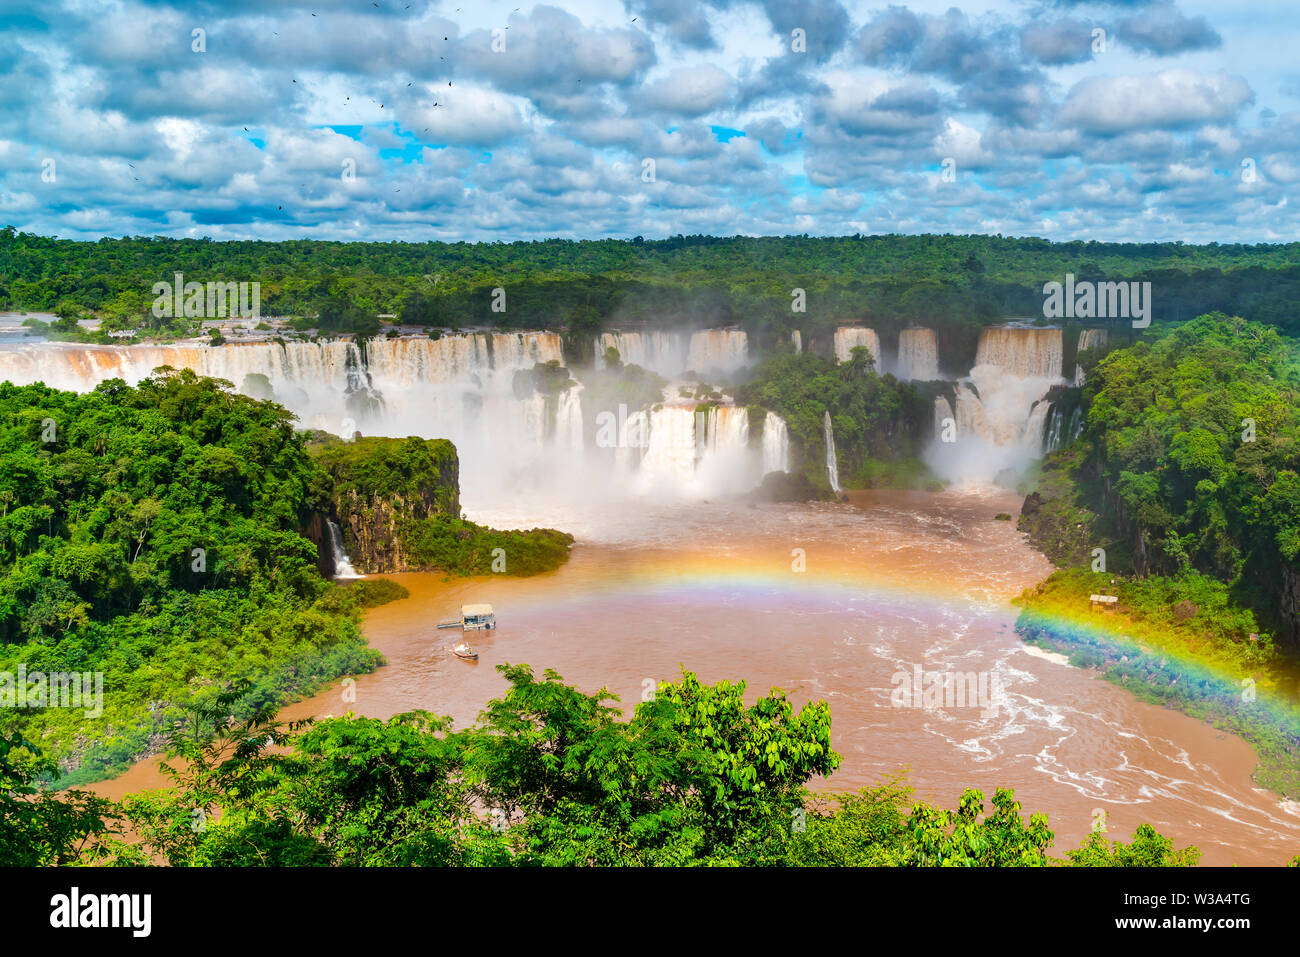 View of the famous Iguazu falls in Iguazu National Park Argentina from Brazil side - Stock Image